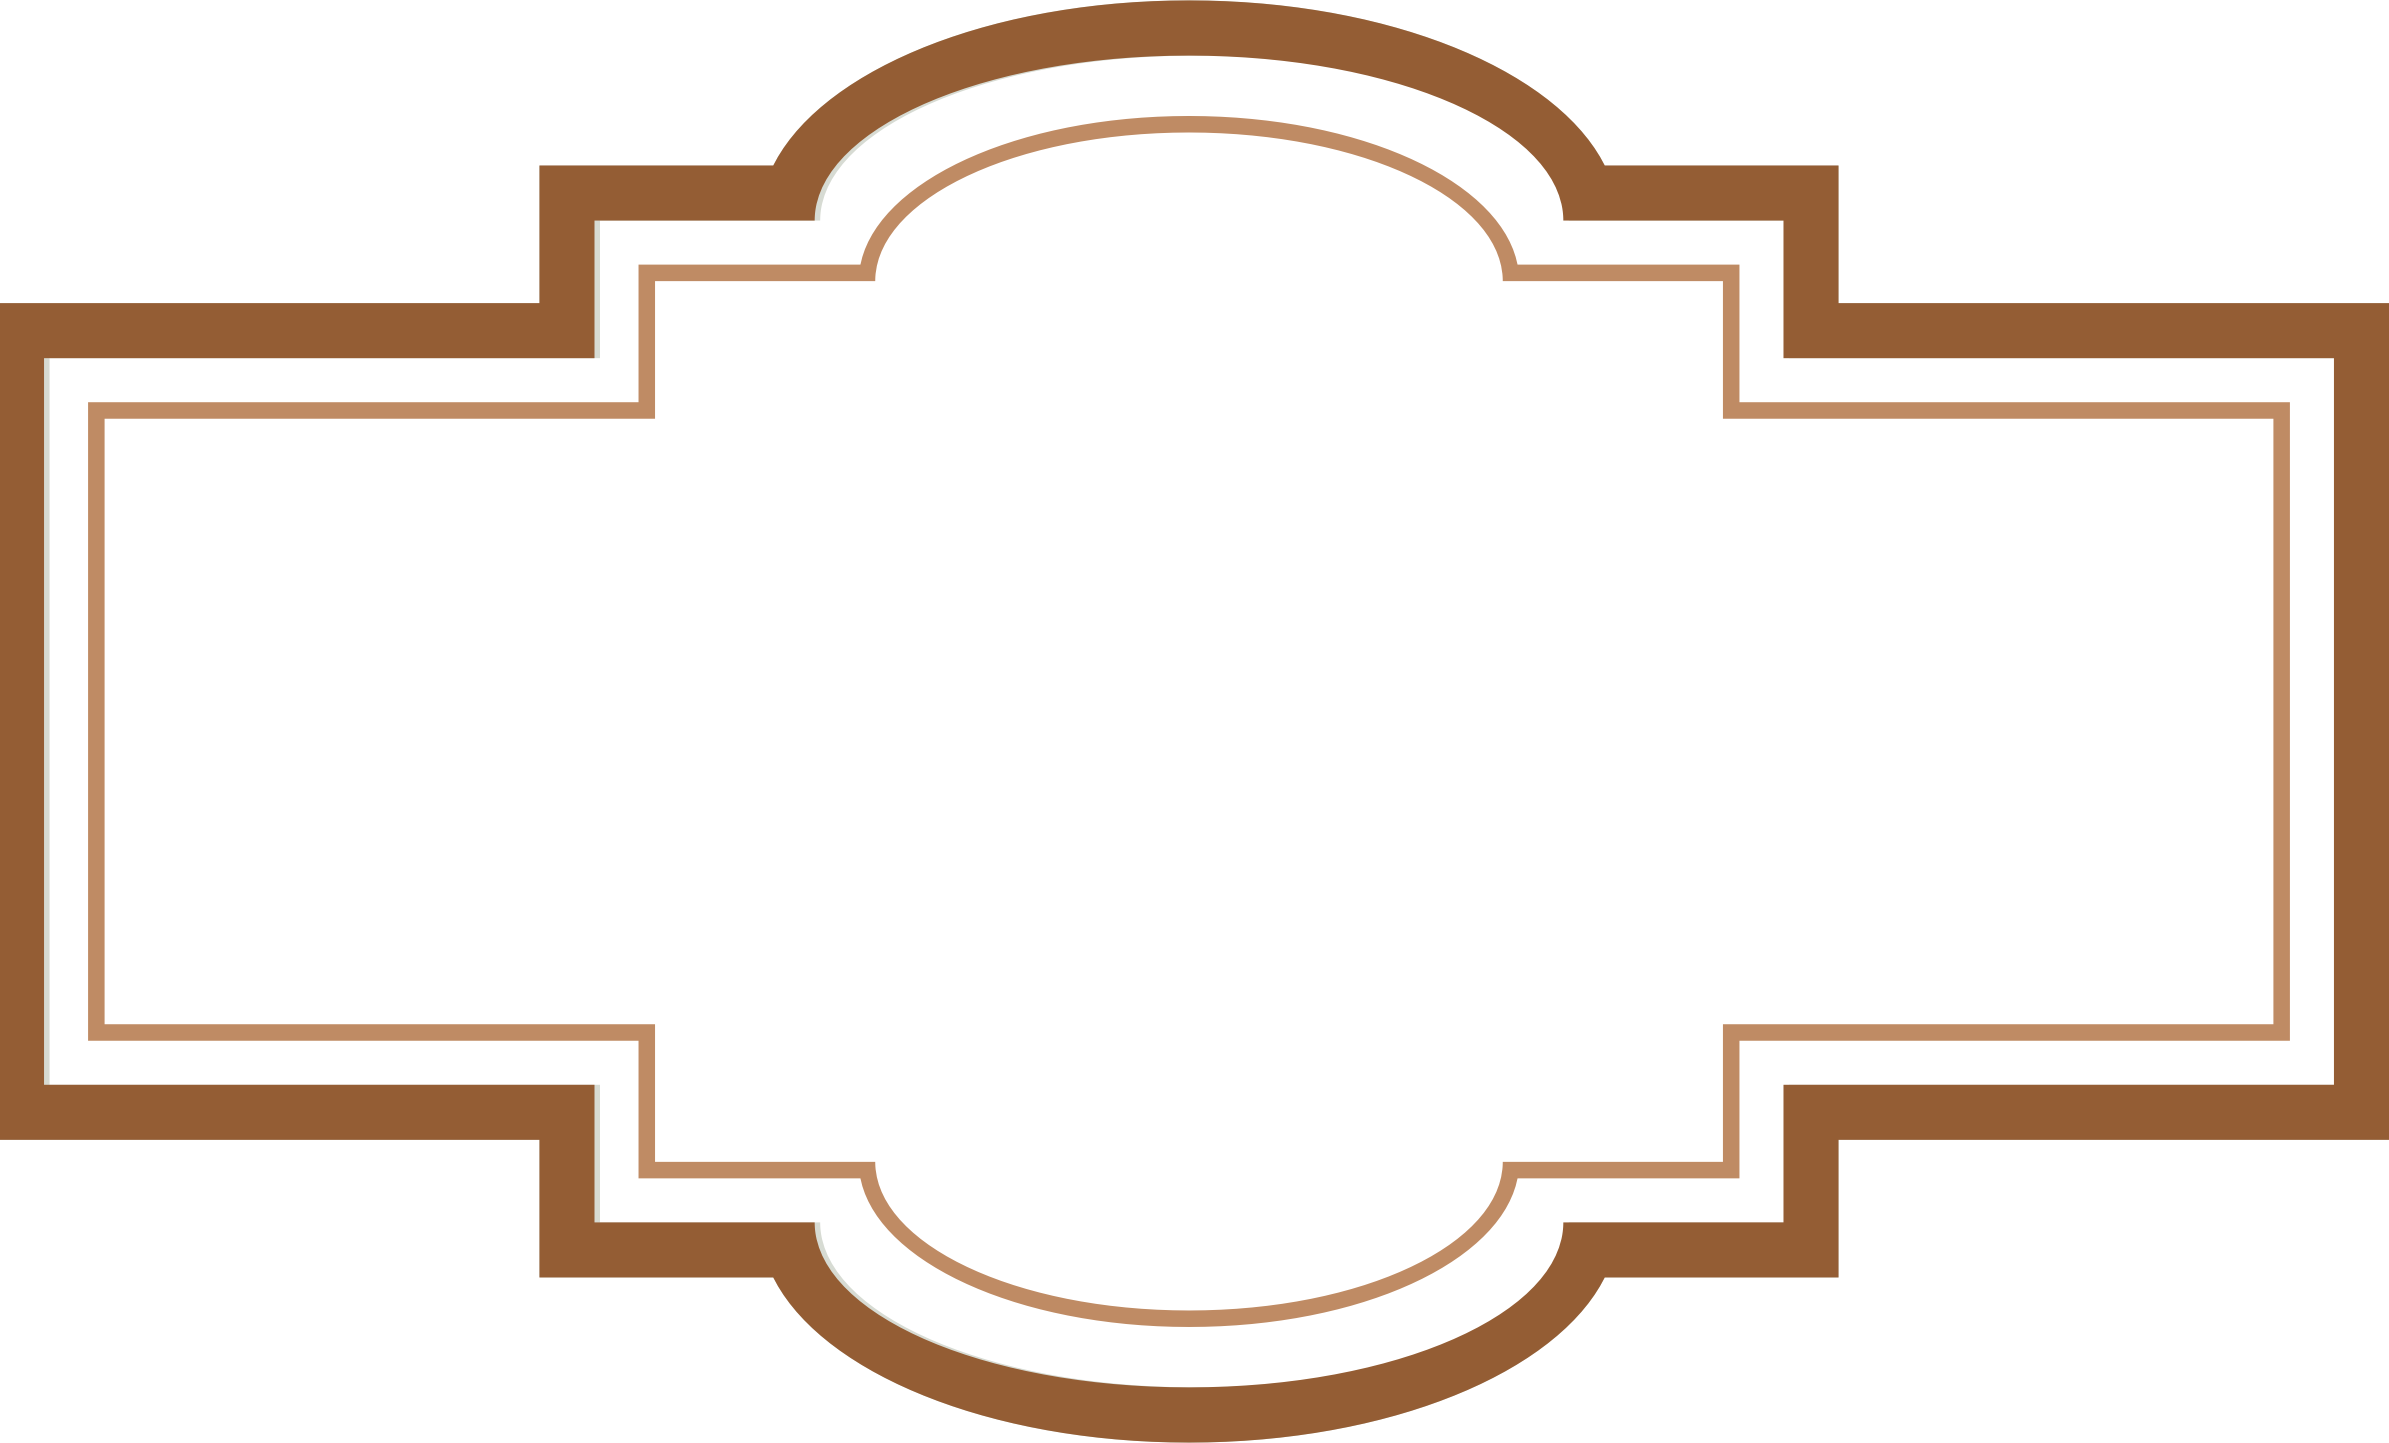 Label border png. Box icons free and